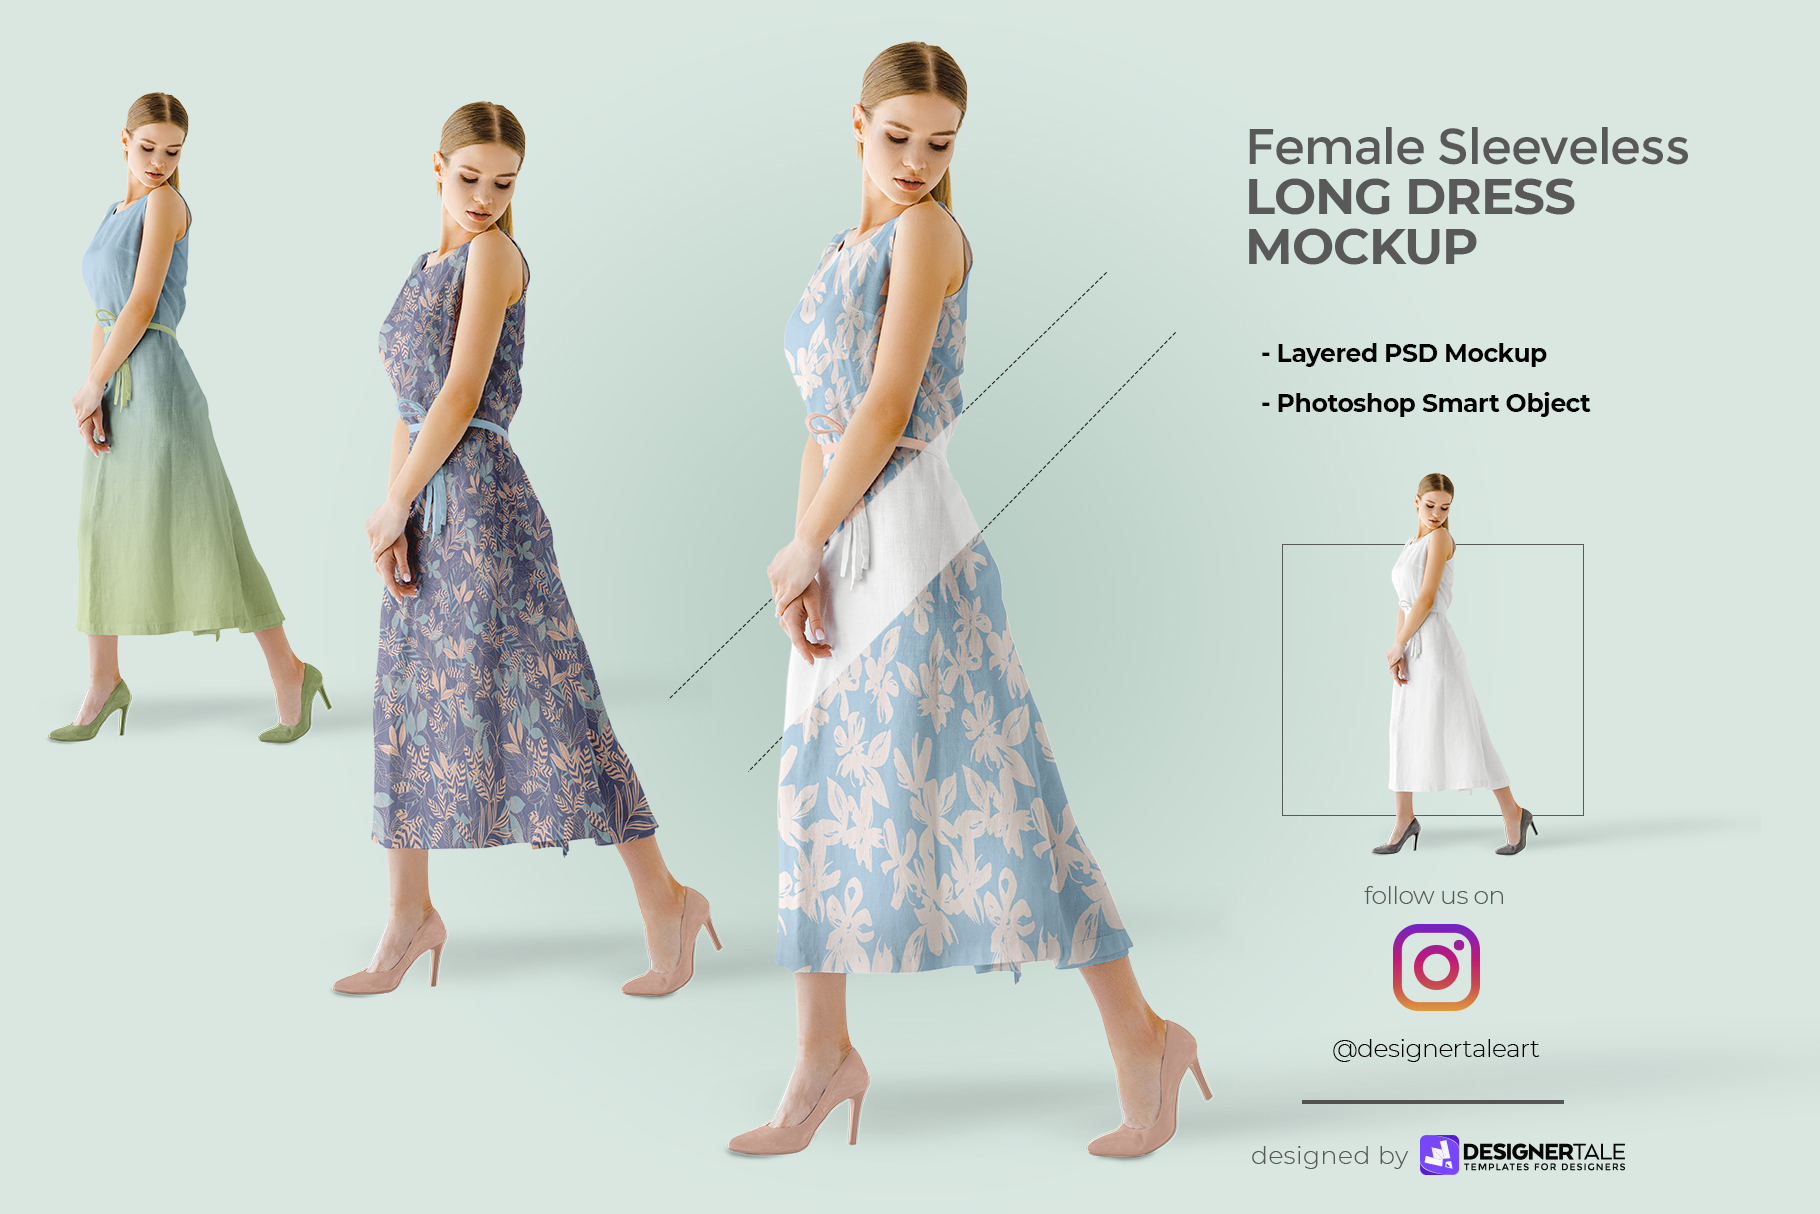 female sleeveless long dress mockup image preview 1